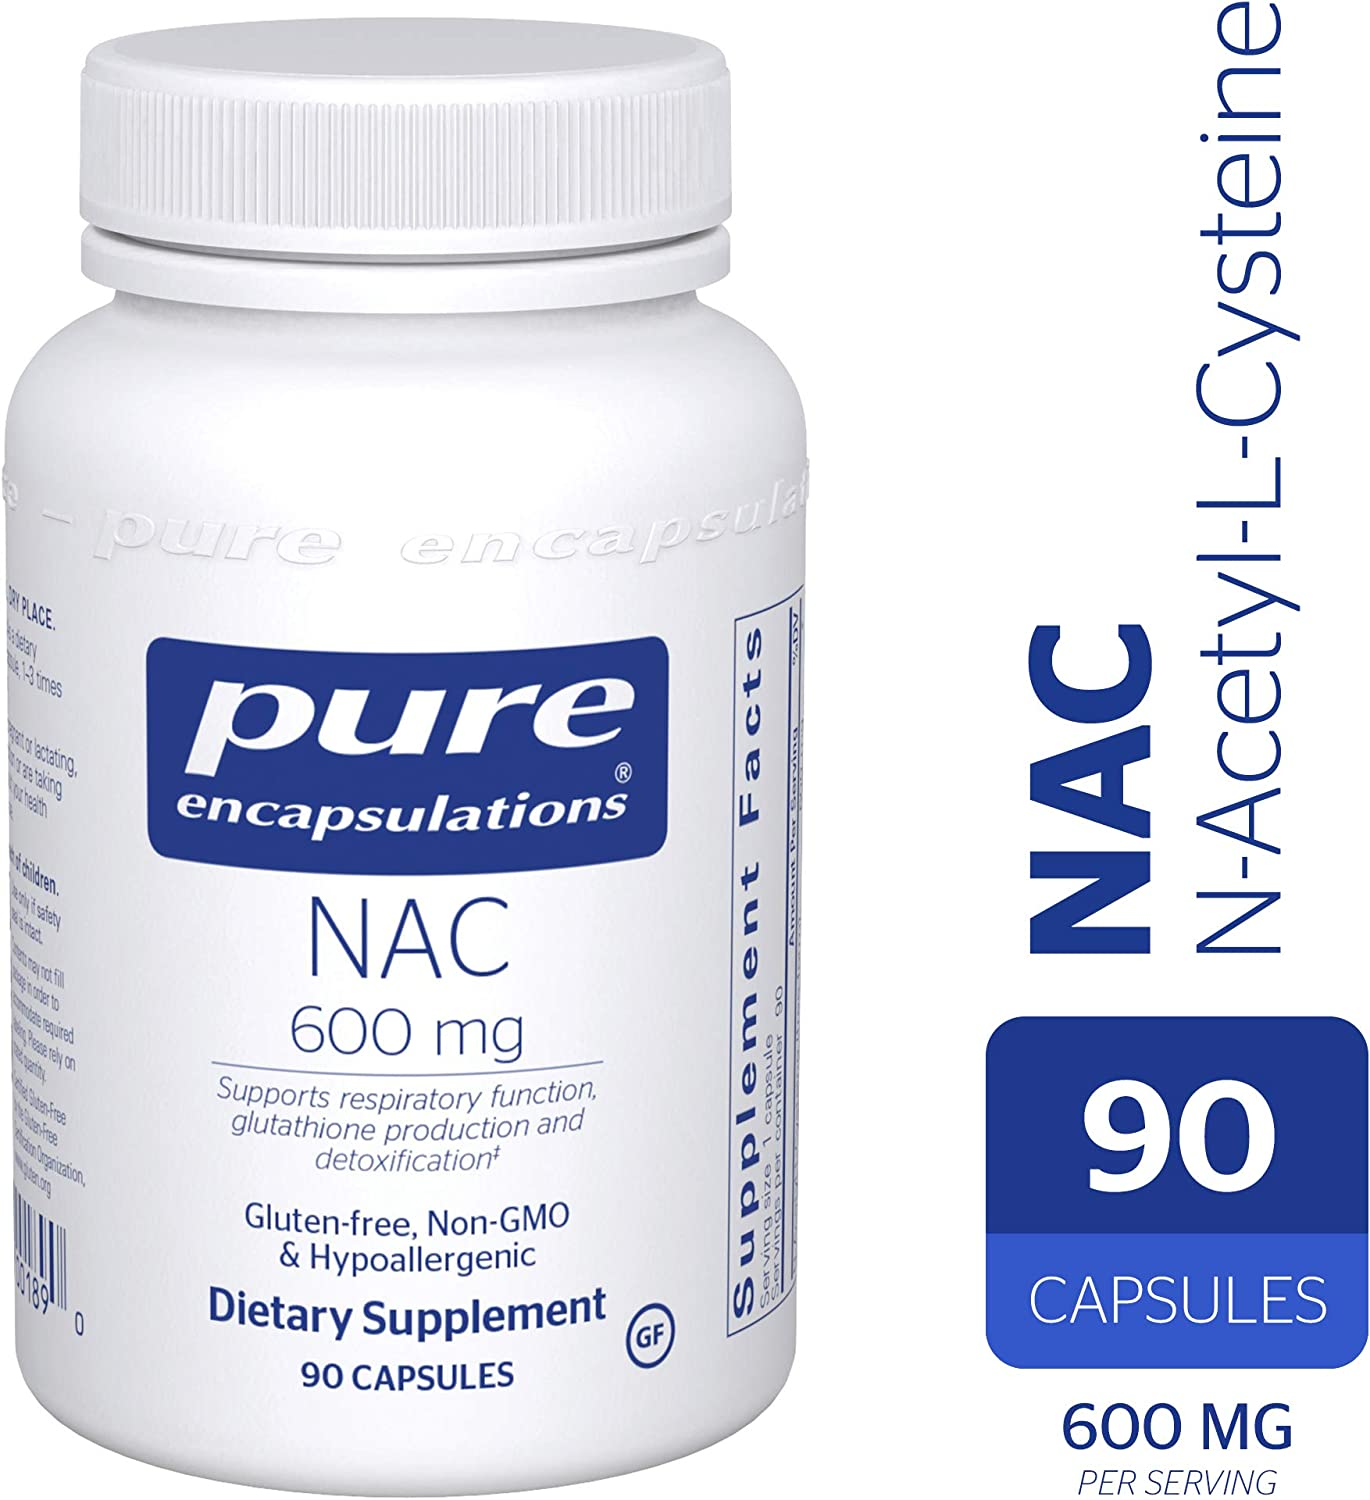 Pure Encapsulations – NAC N-Acetyl-L-Cysteine 600 mg – Amino Acids to Support Antioxidant Defense and Healthy Lung Tissue – 90 Capsules